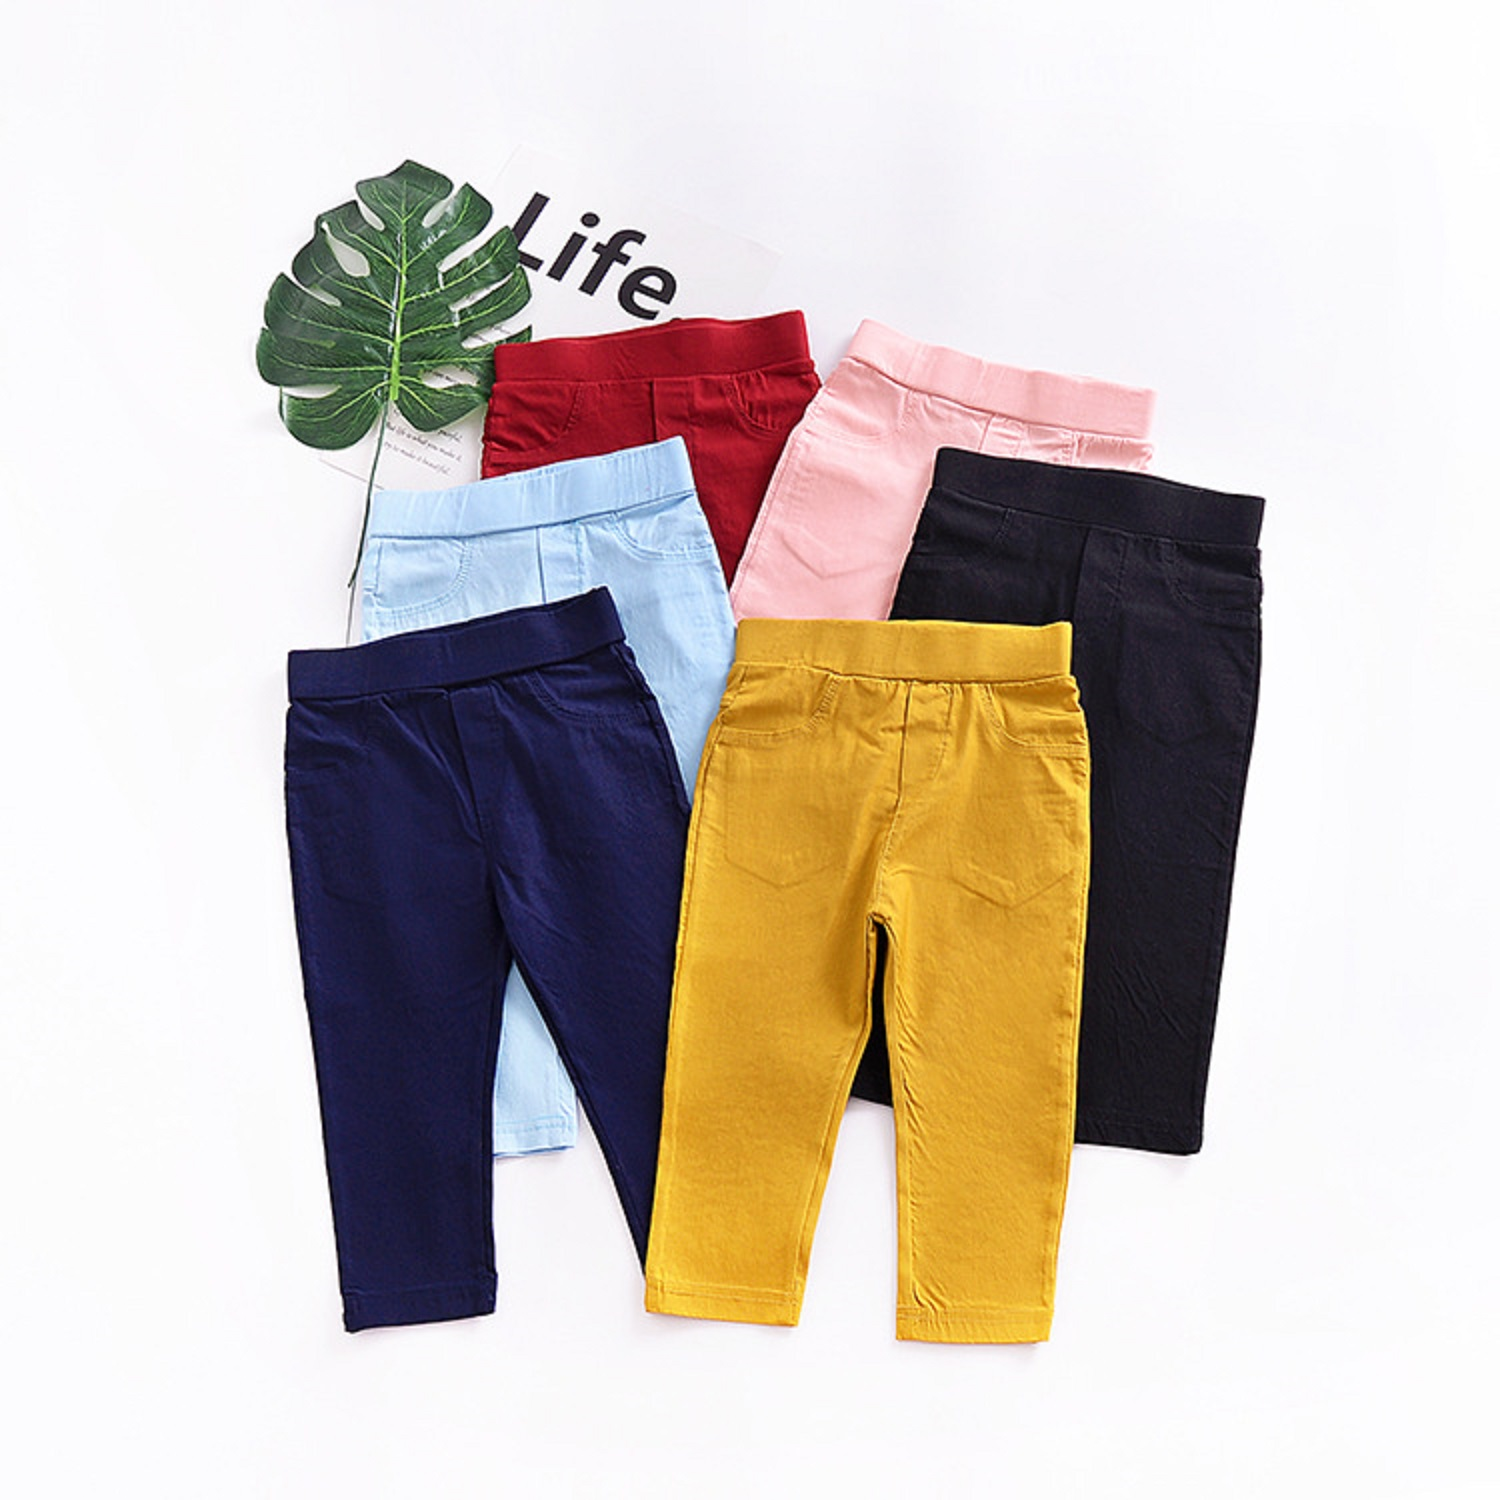 Trousers Pant Stretch-Pants Bottoms Girls Boys Kids Children Casual Multicolor Solid